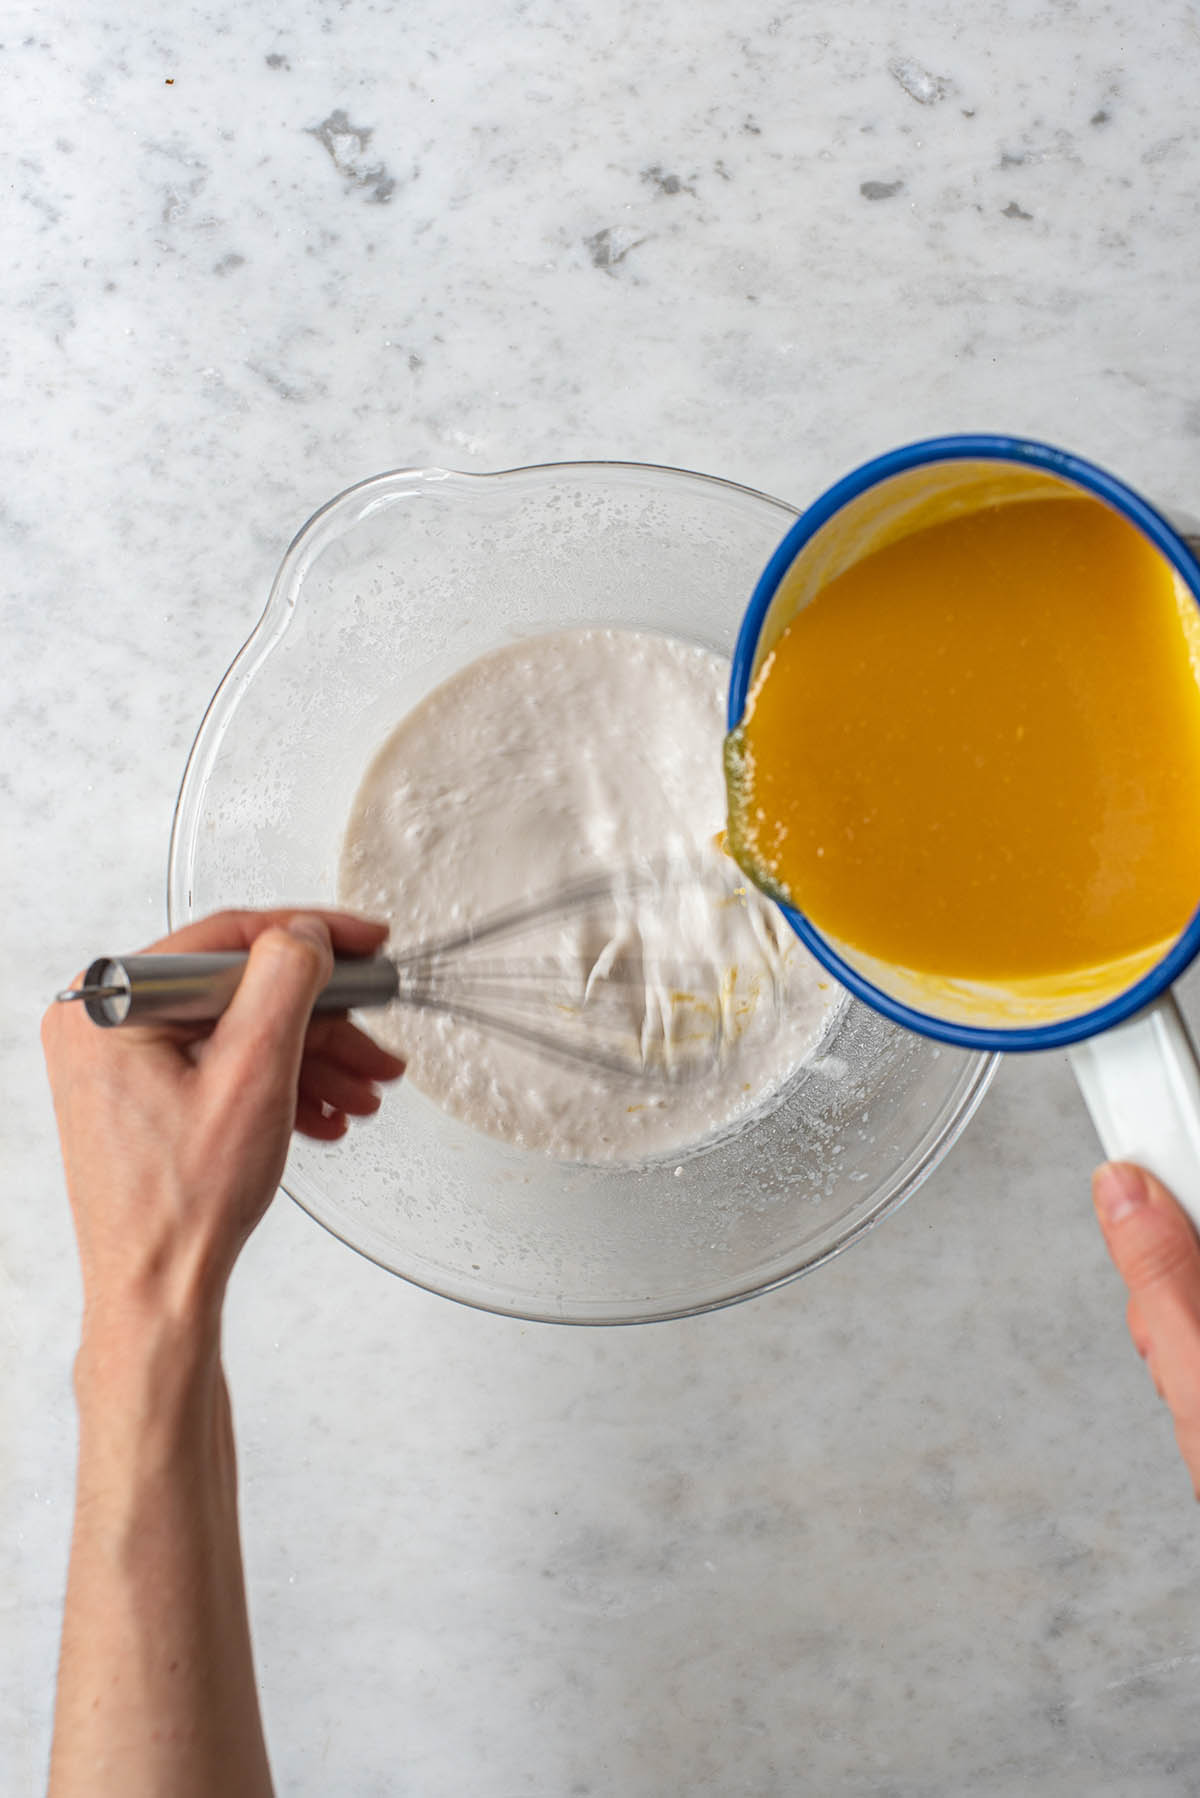 Two hands pouring and whisking yellow liquid from a small white pot into a bowl of whipped coconut milk.